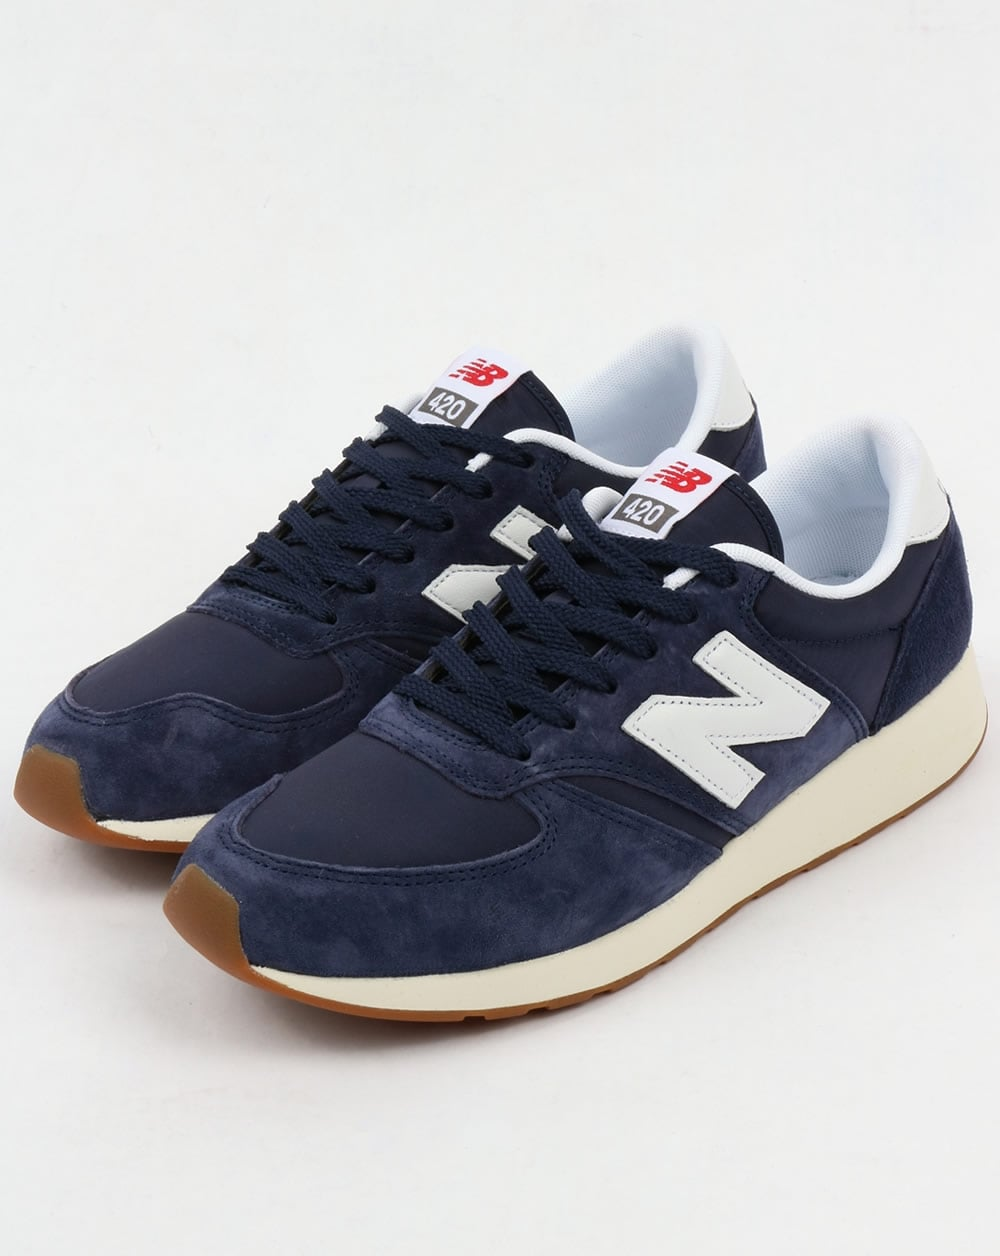 new balance 70s running 420 trainers in navy u420pnv